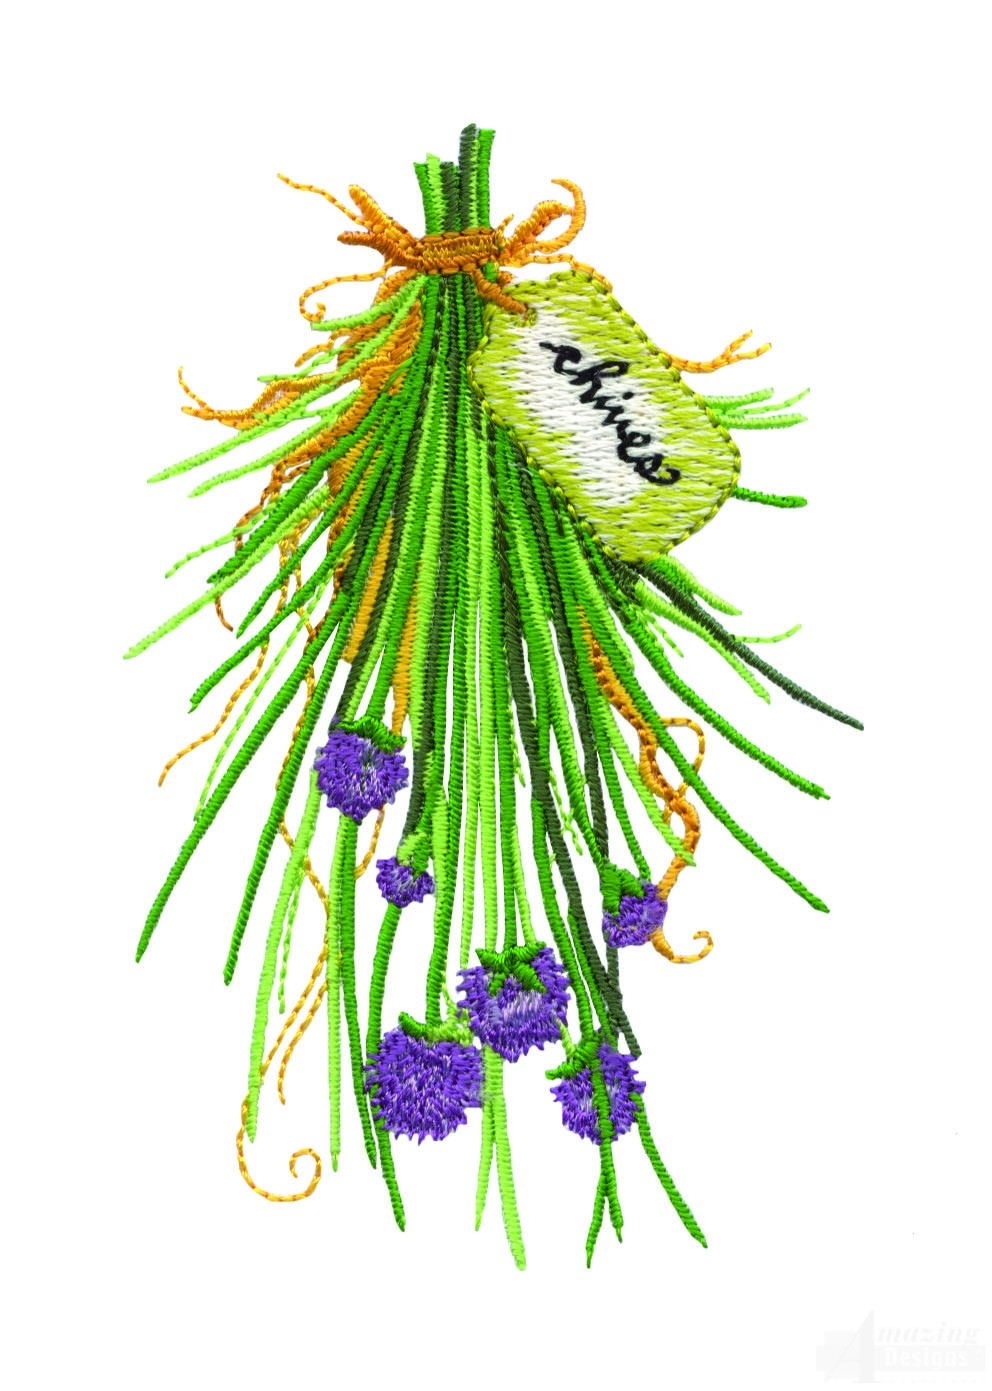 Herb garden embroidery design collection for Garden embroidery designs free